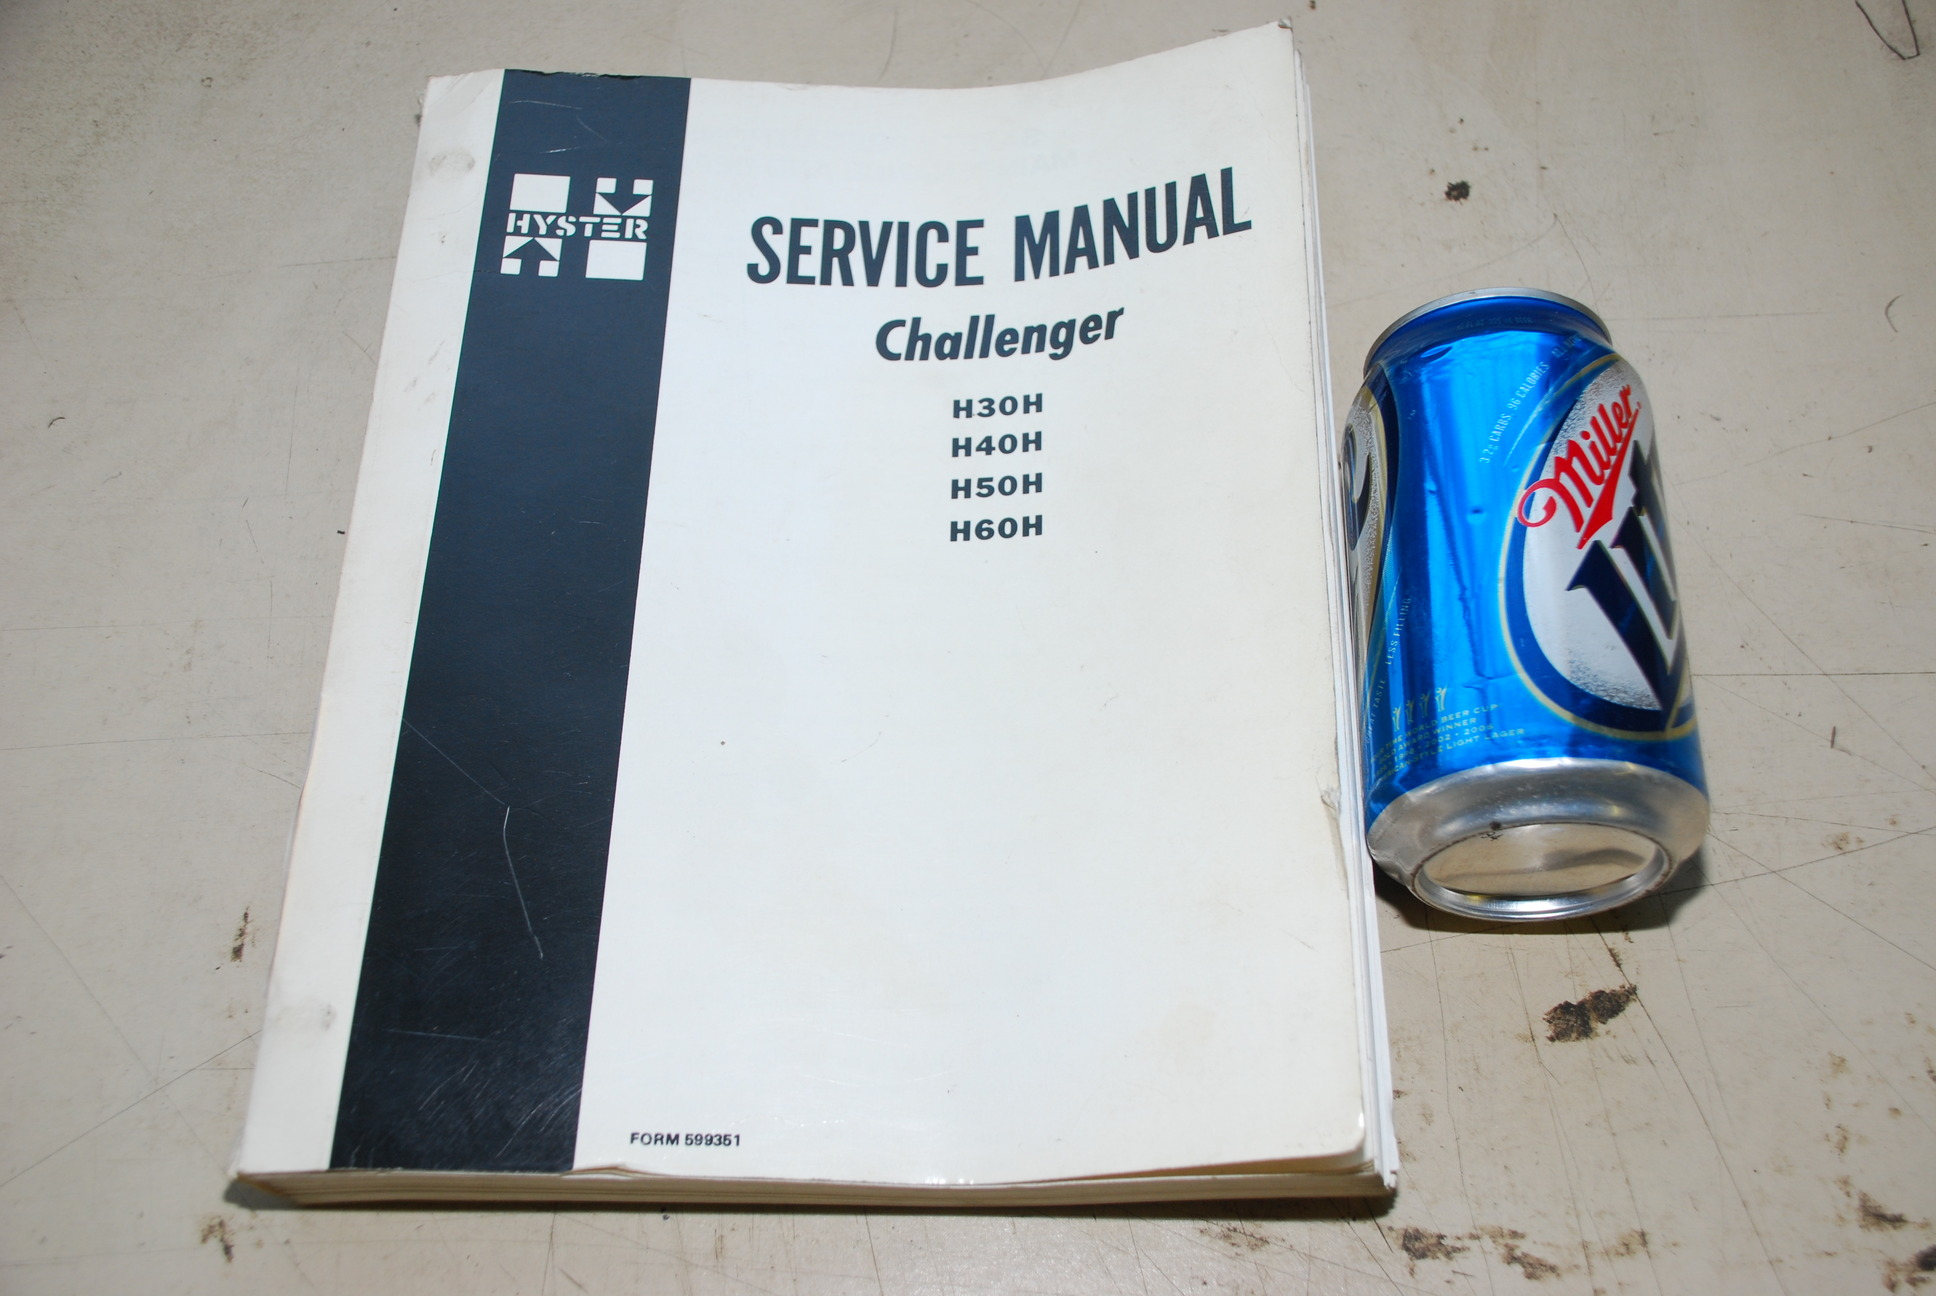 4164 0001 jpg of hyster service manual challenger forklift hyster 60 specifications hyster 60 forklift manual